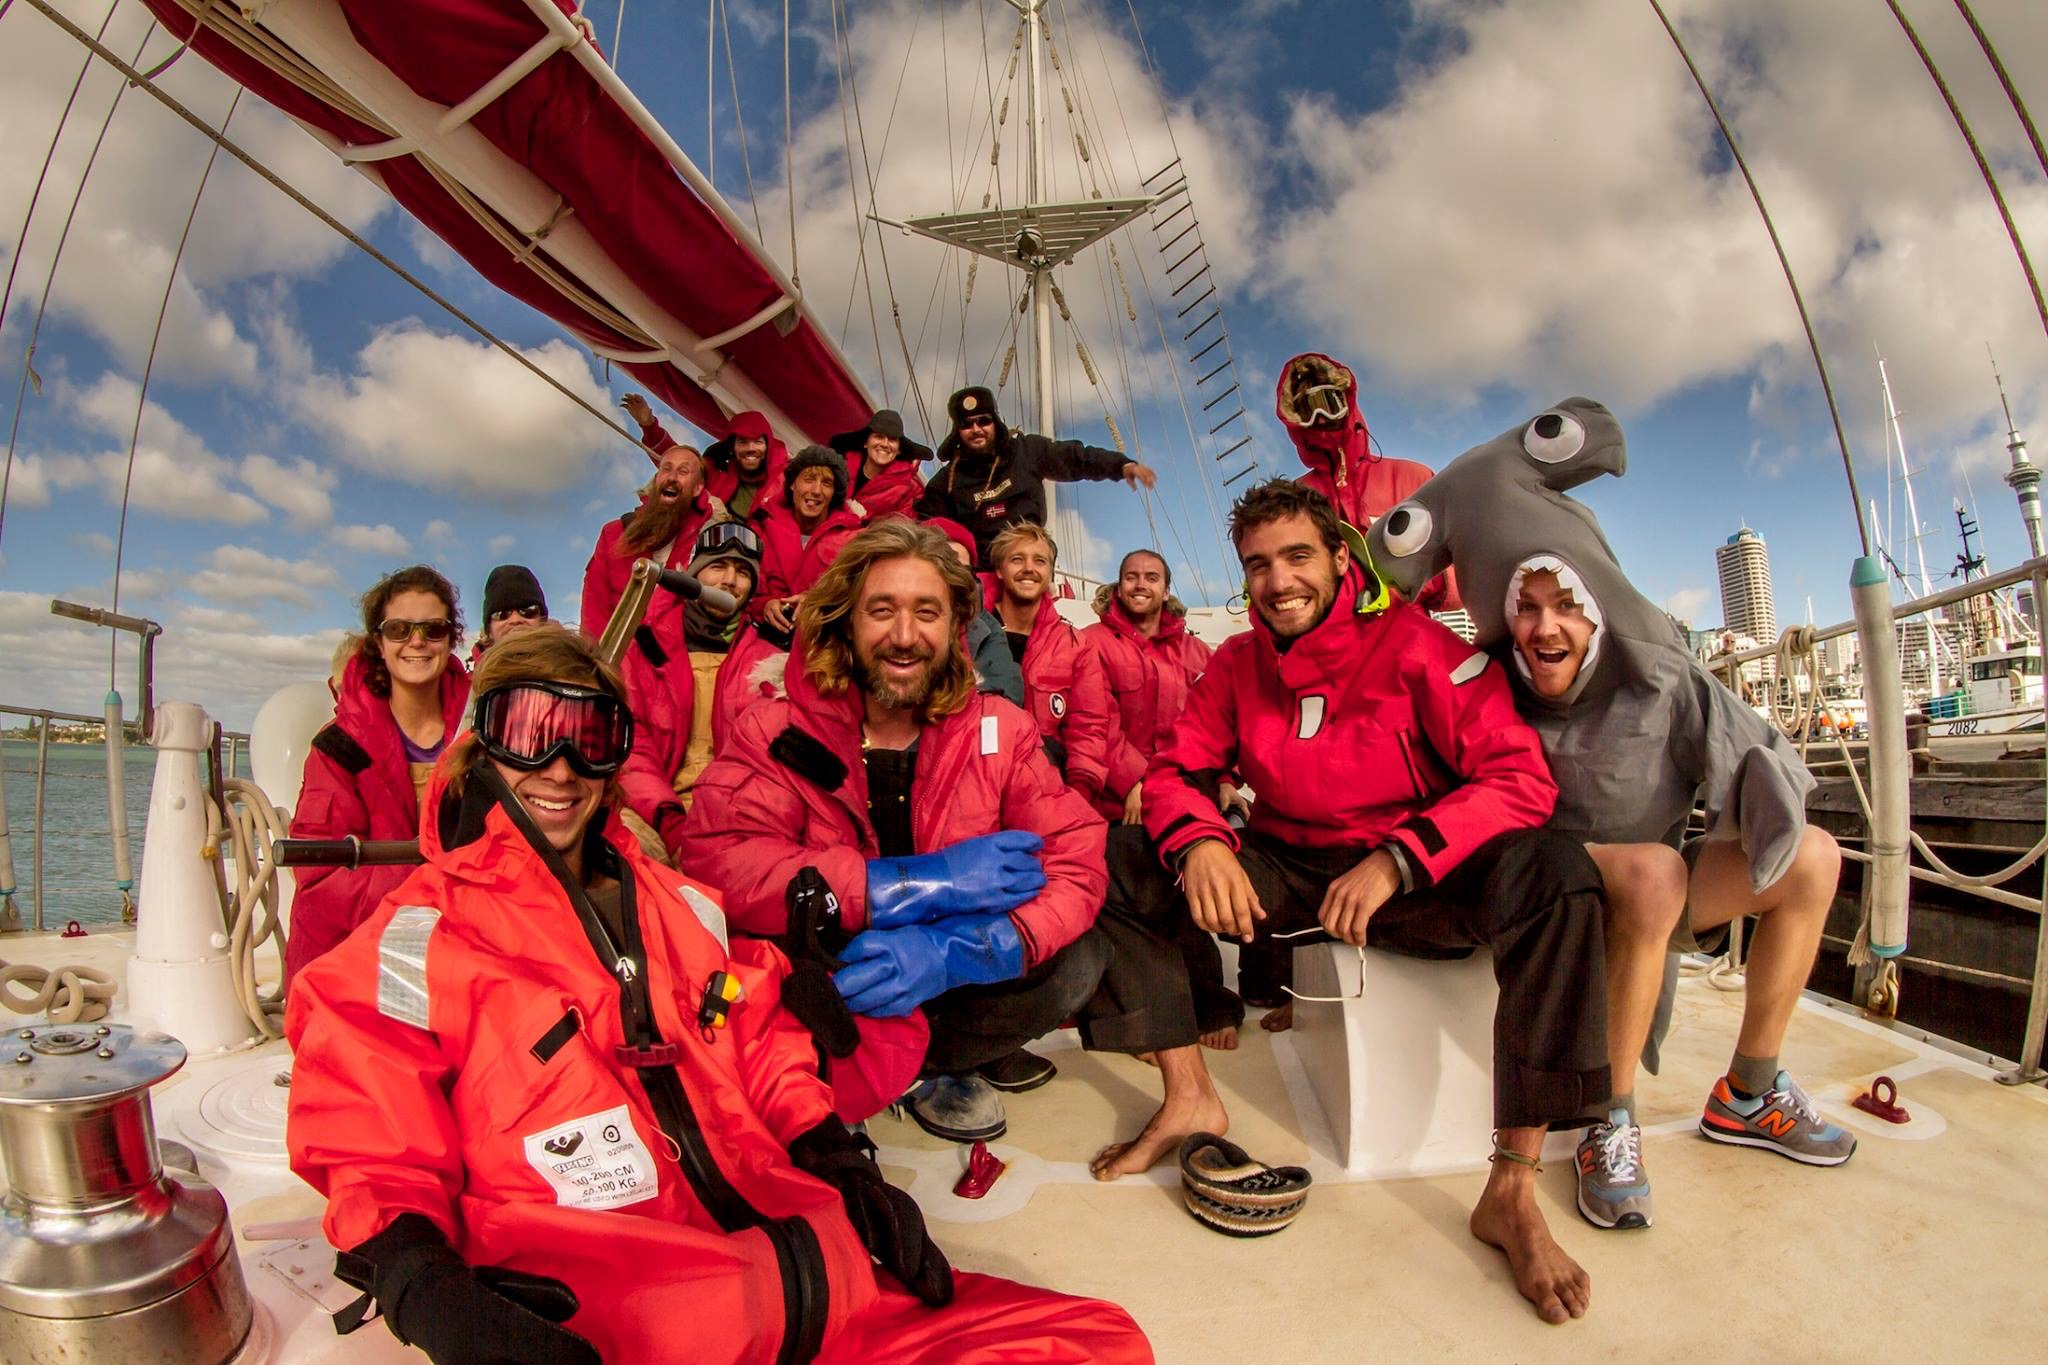 Sea Gypsies: The Far Side of the World - preparing to depart Auckland - Crew in high spirits getting ready to head South from New Zealand